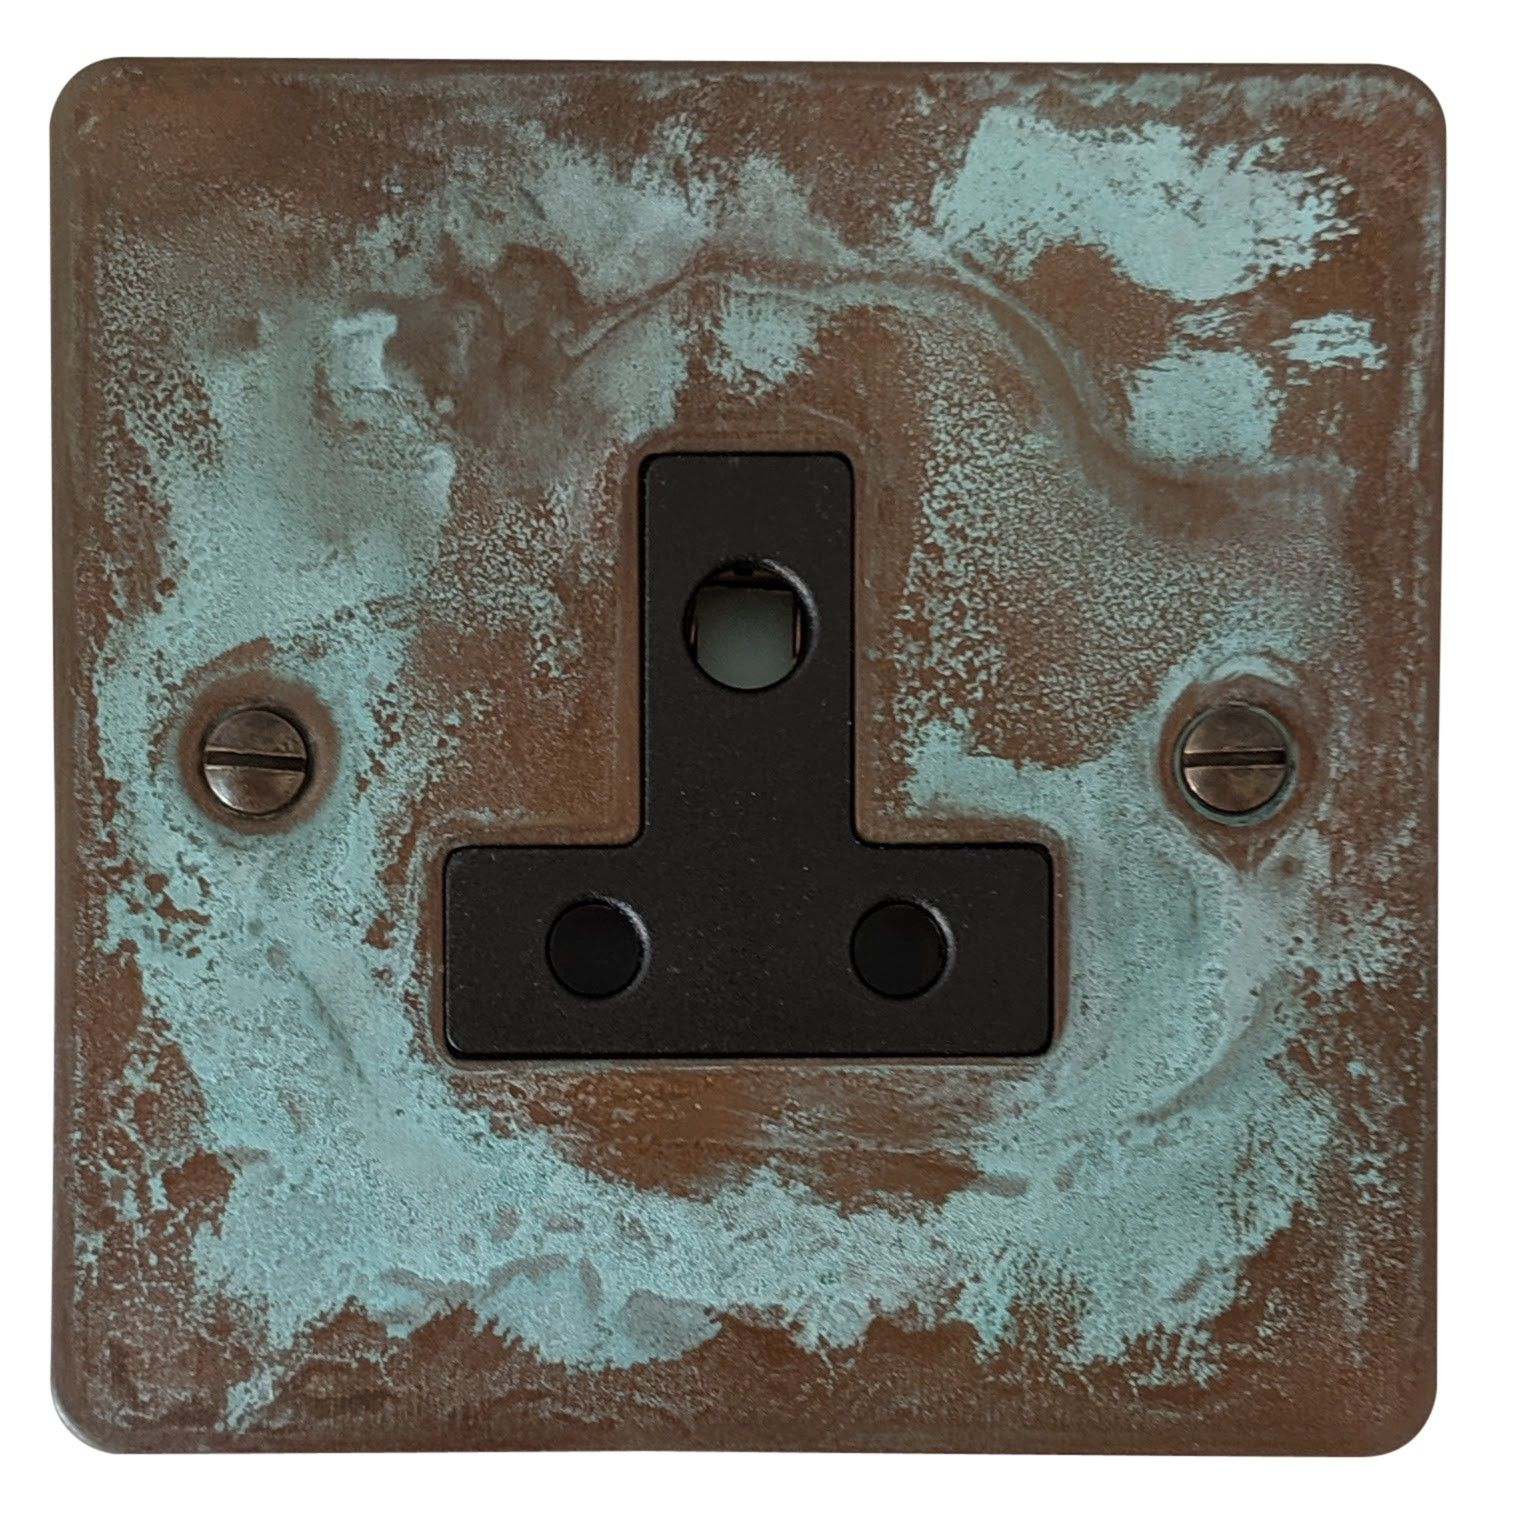 G&H FV59B Flat Plate Verdigris 1 Gang Single 5 Amp Plug Socket